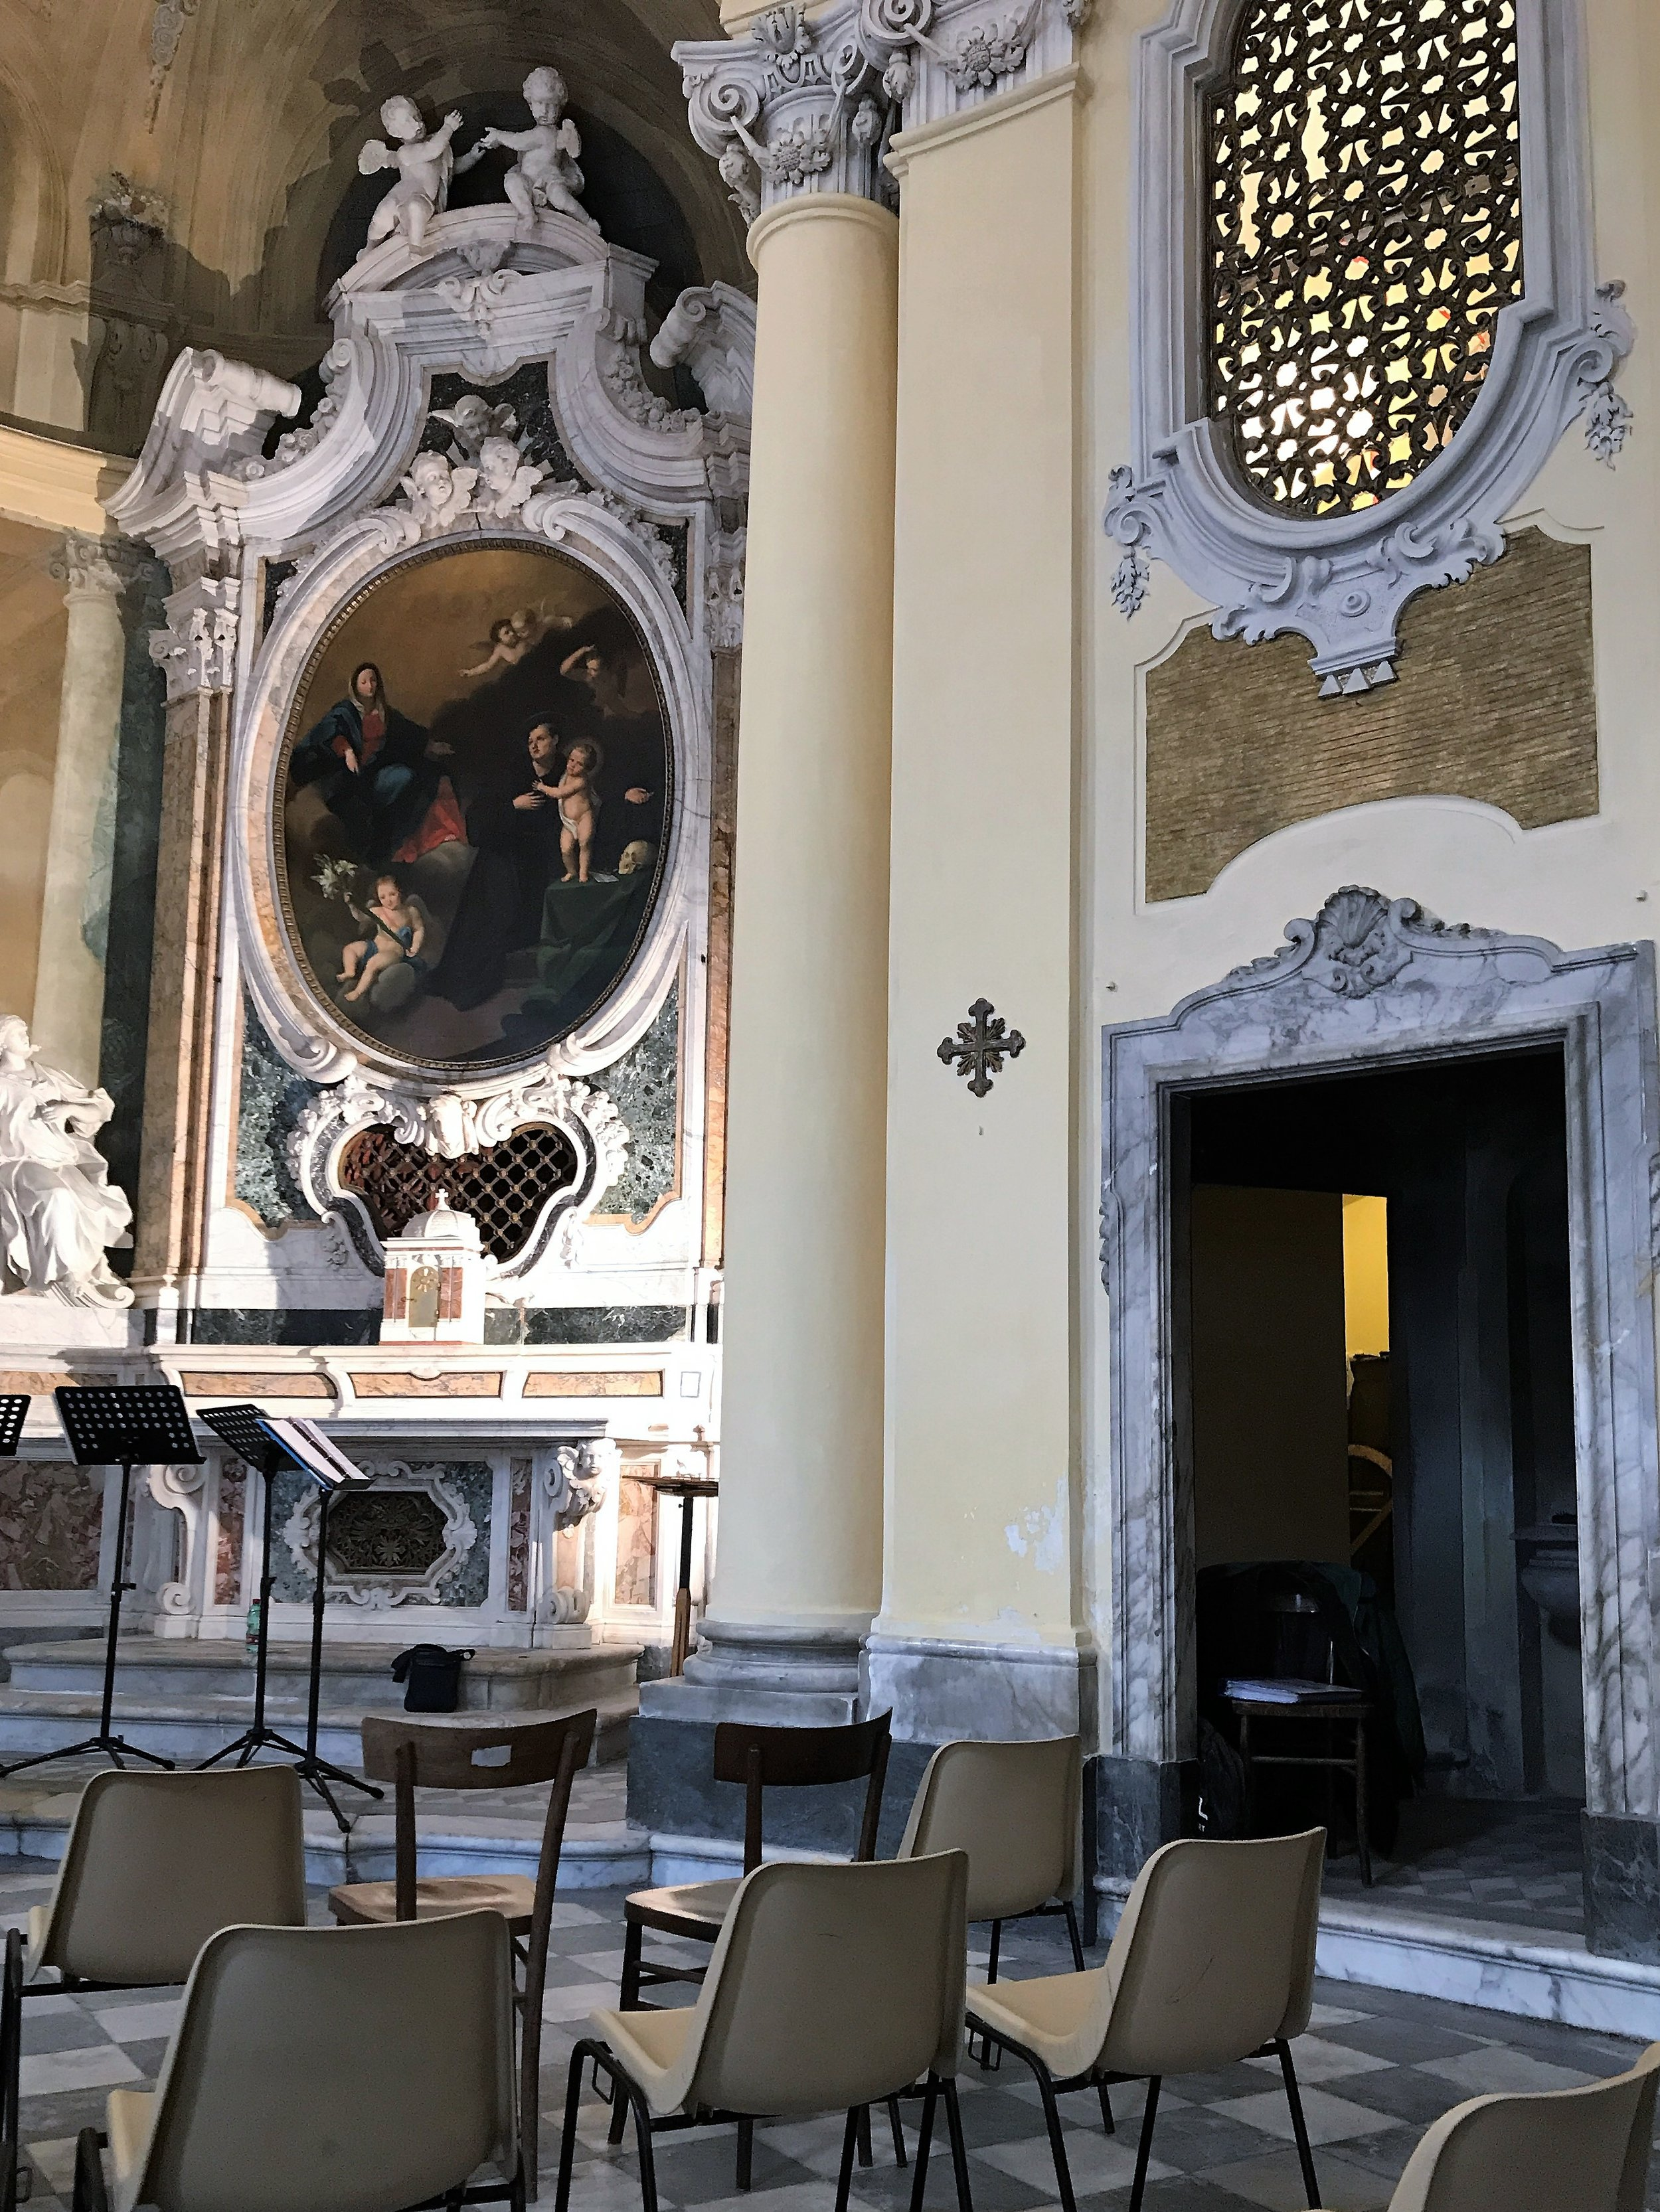 The stage is set for a swing concert in the Chiesa di Santa Catarina in Lucca.